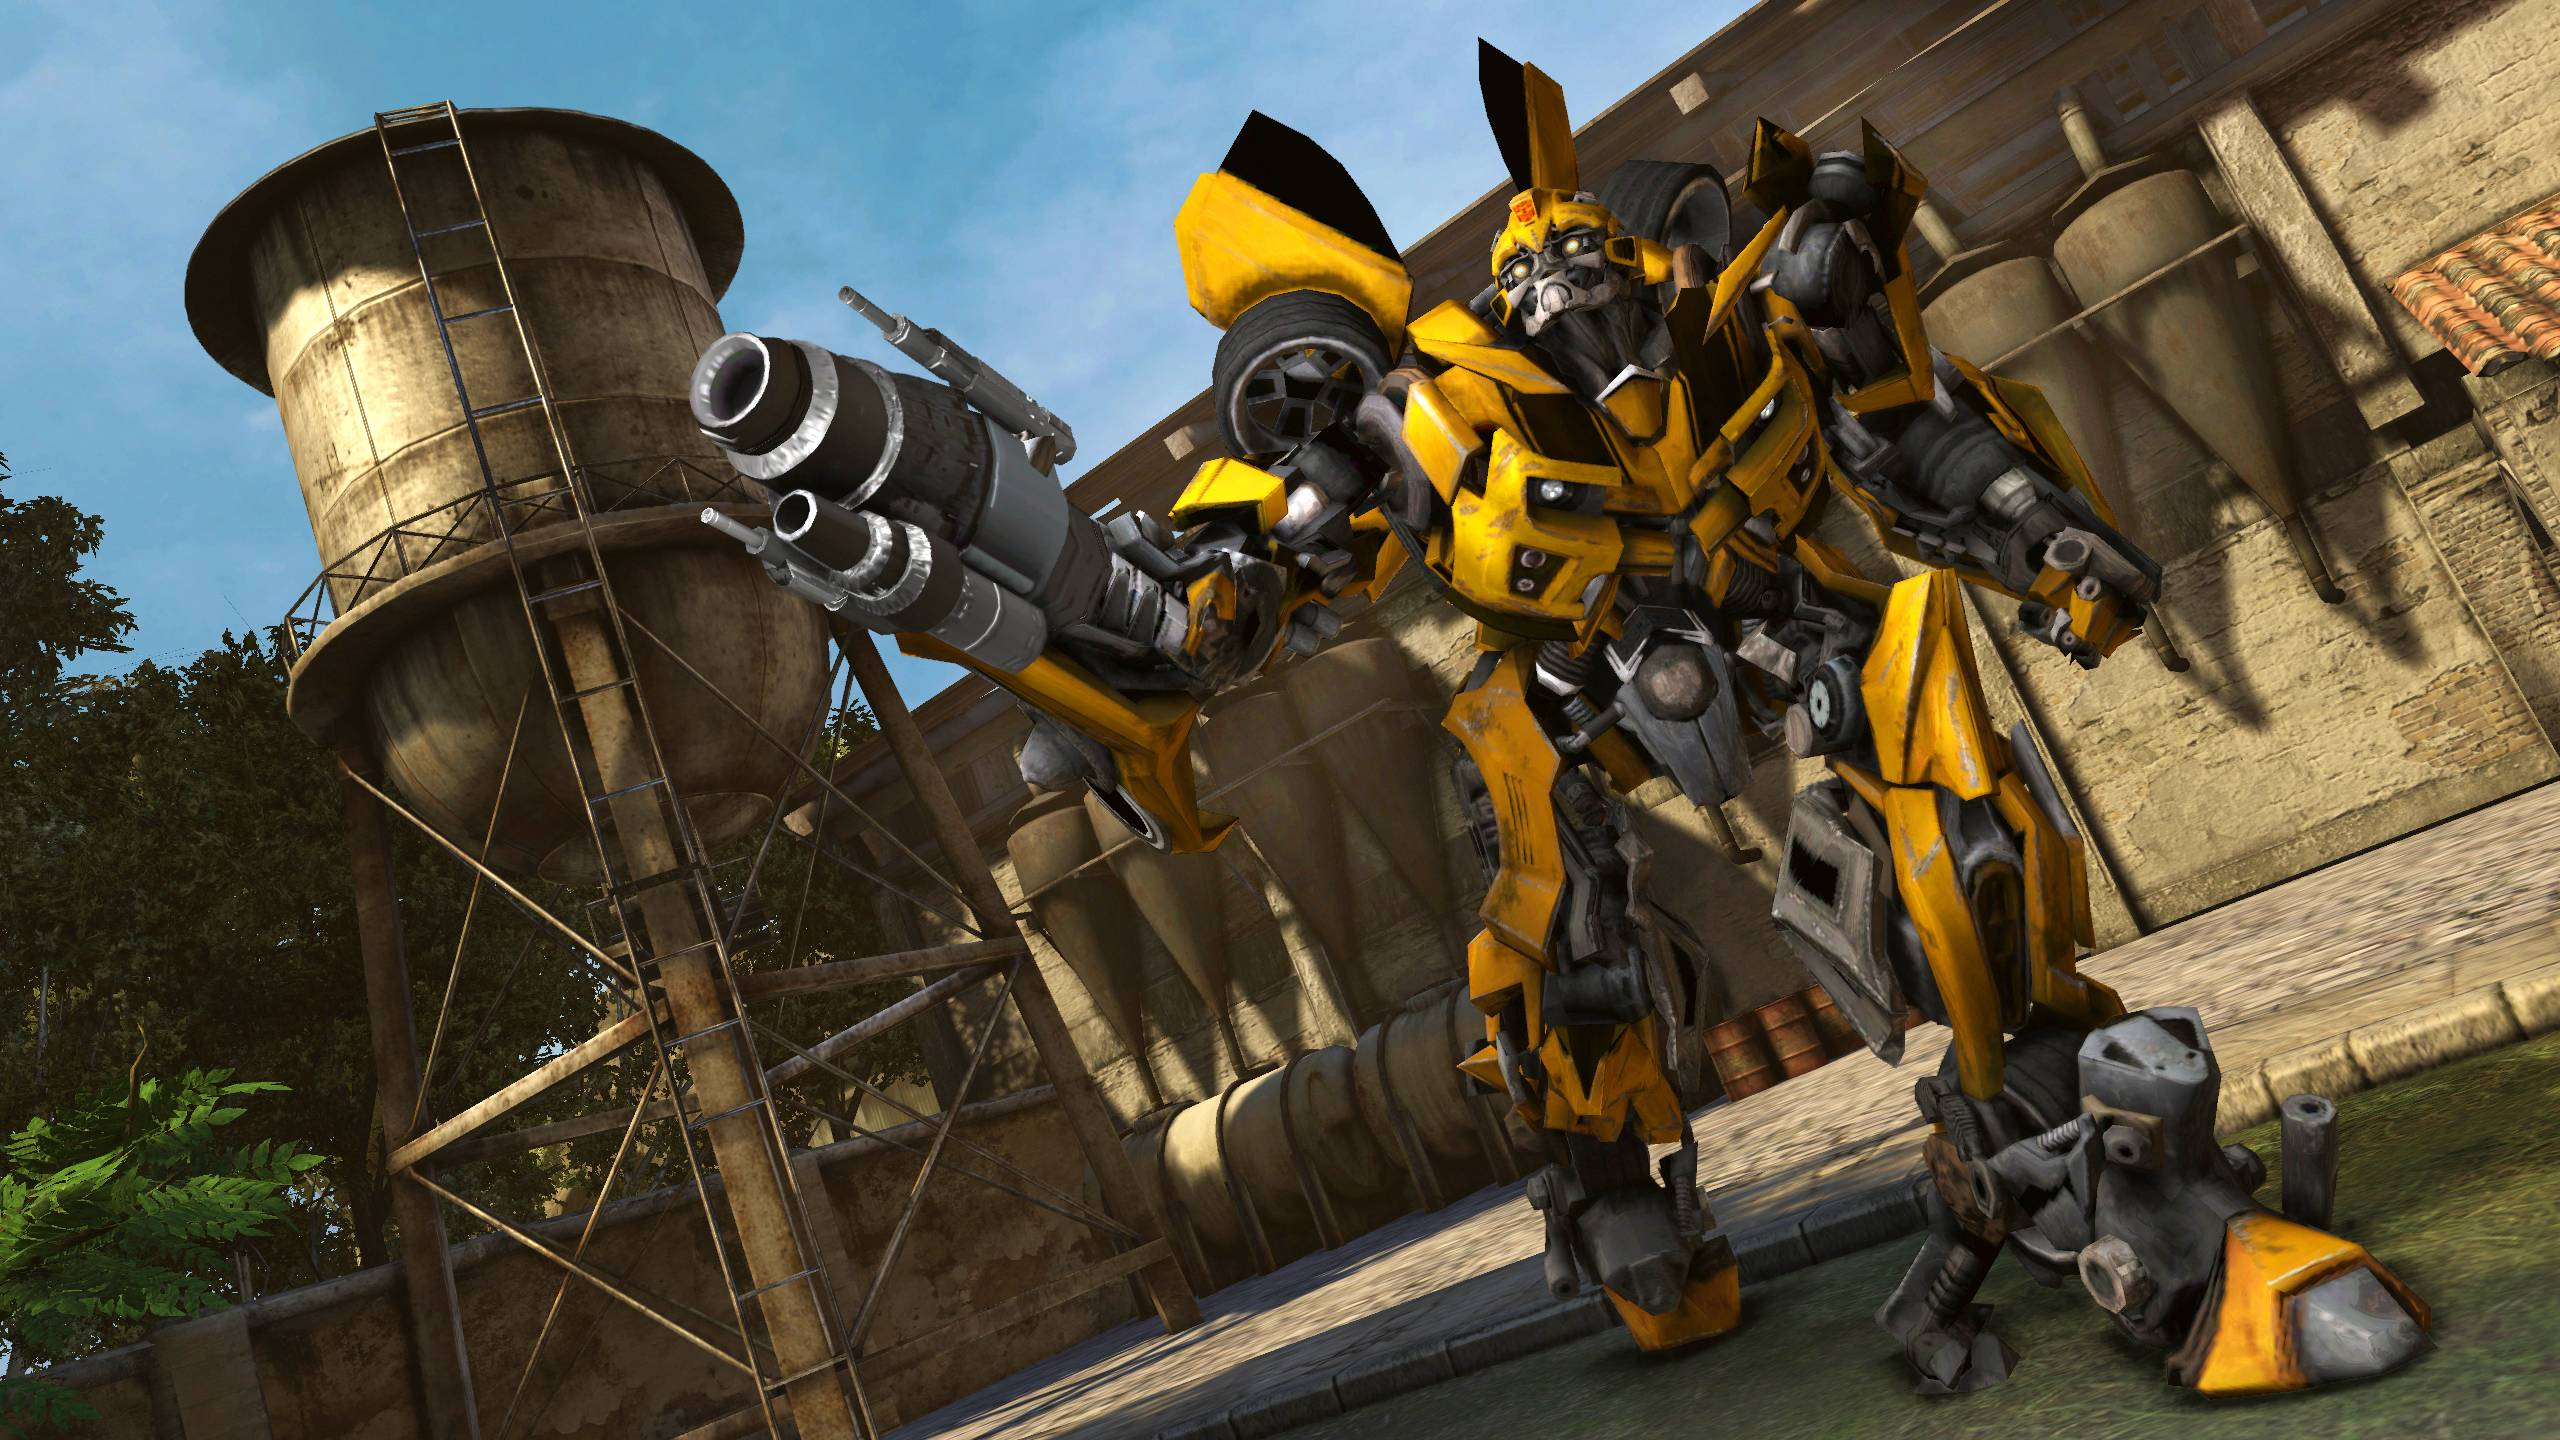 Transformers 2 Bumblebee Wallpapers